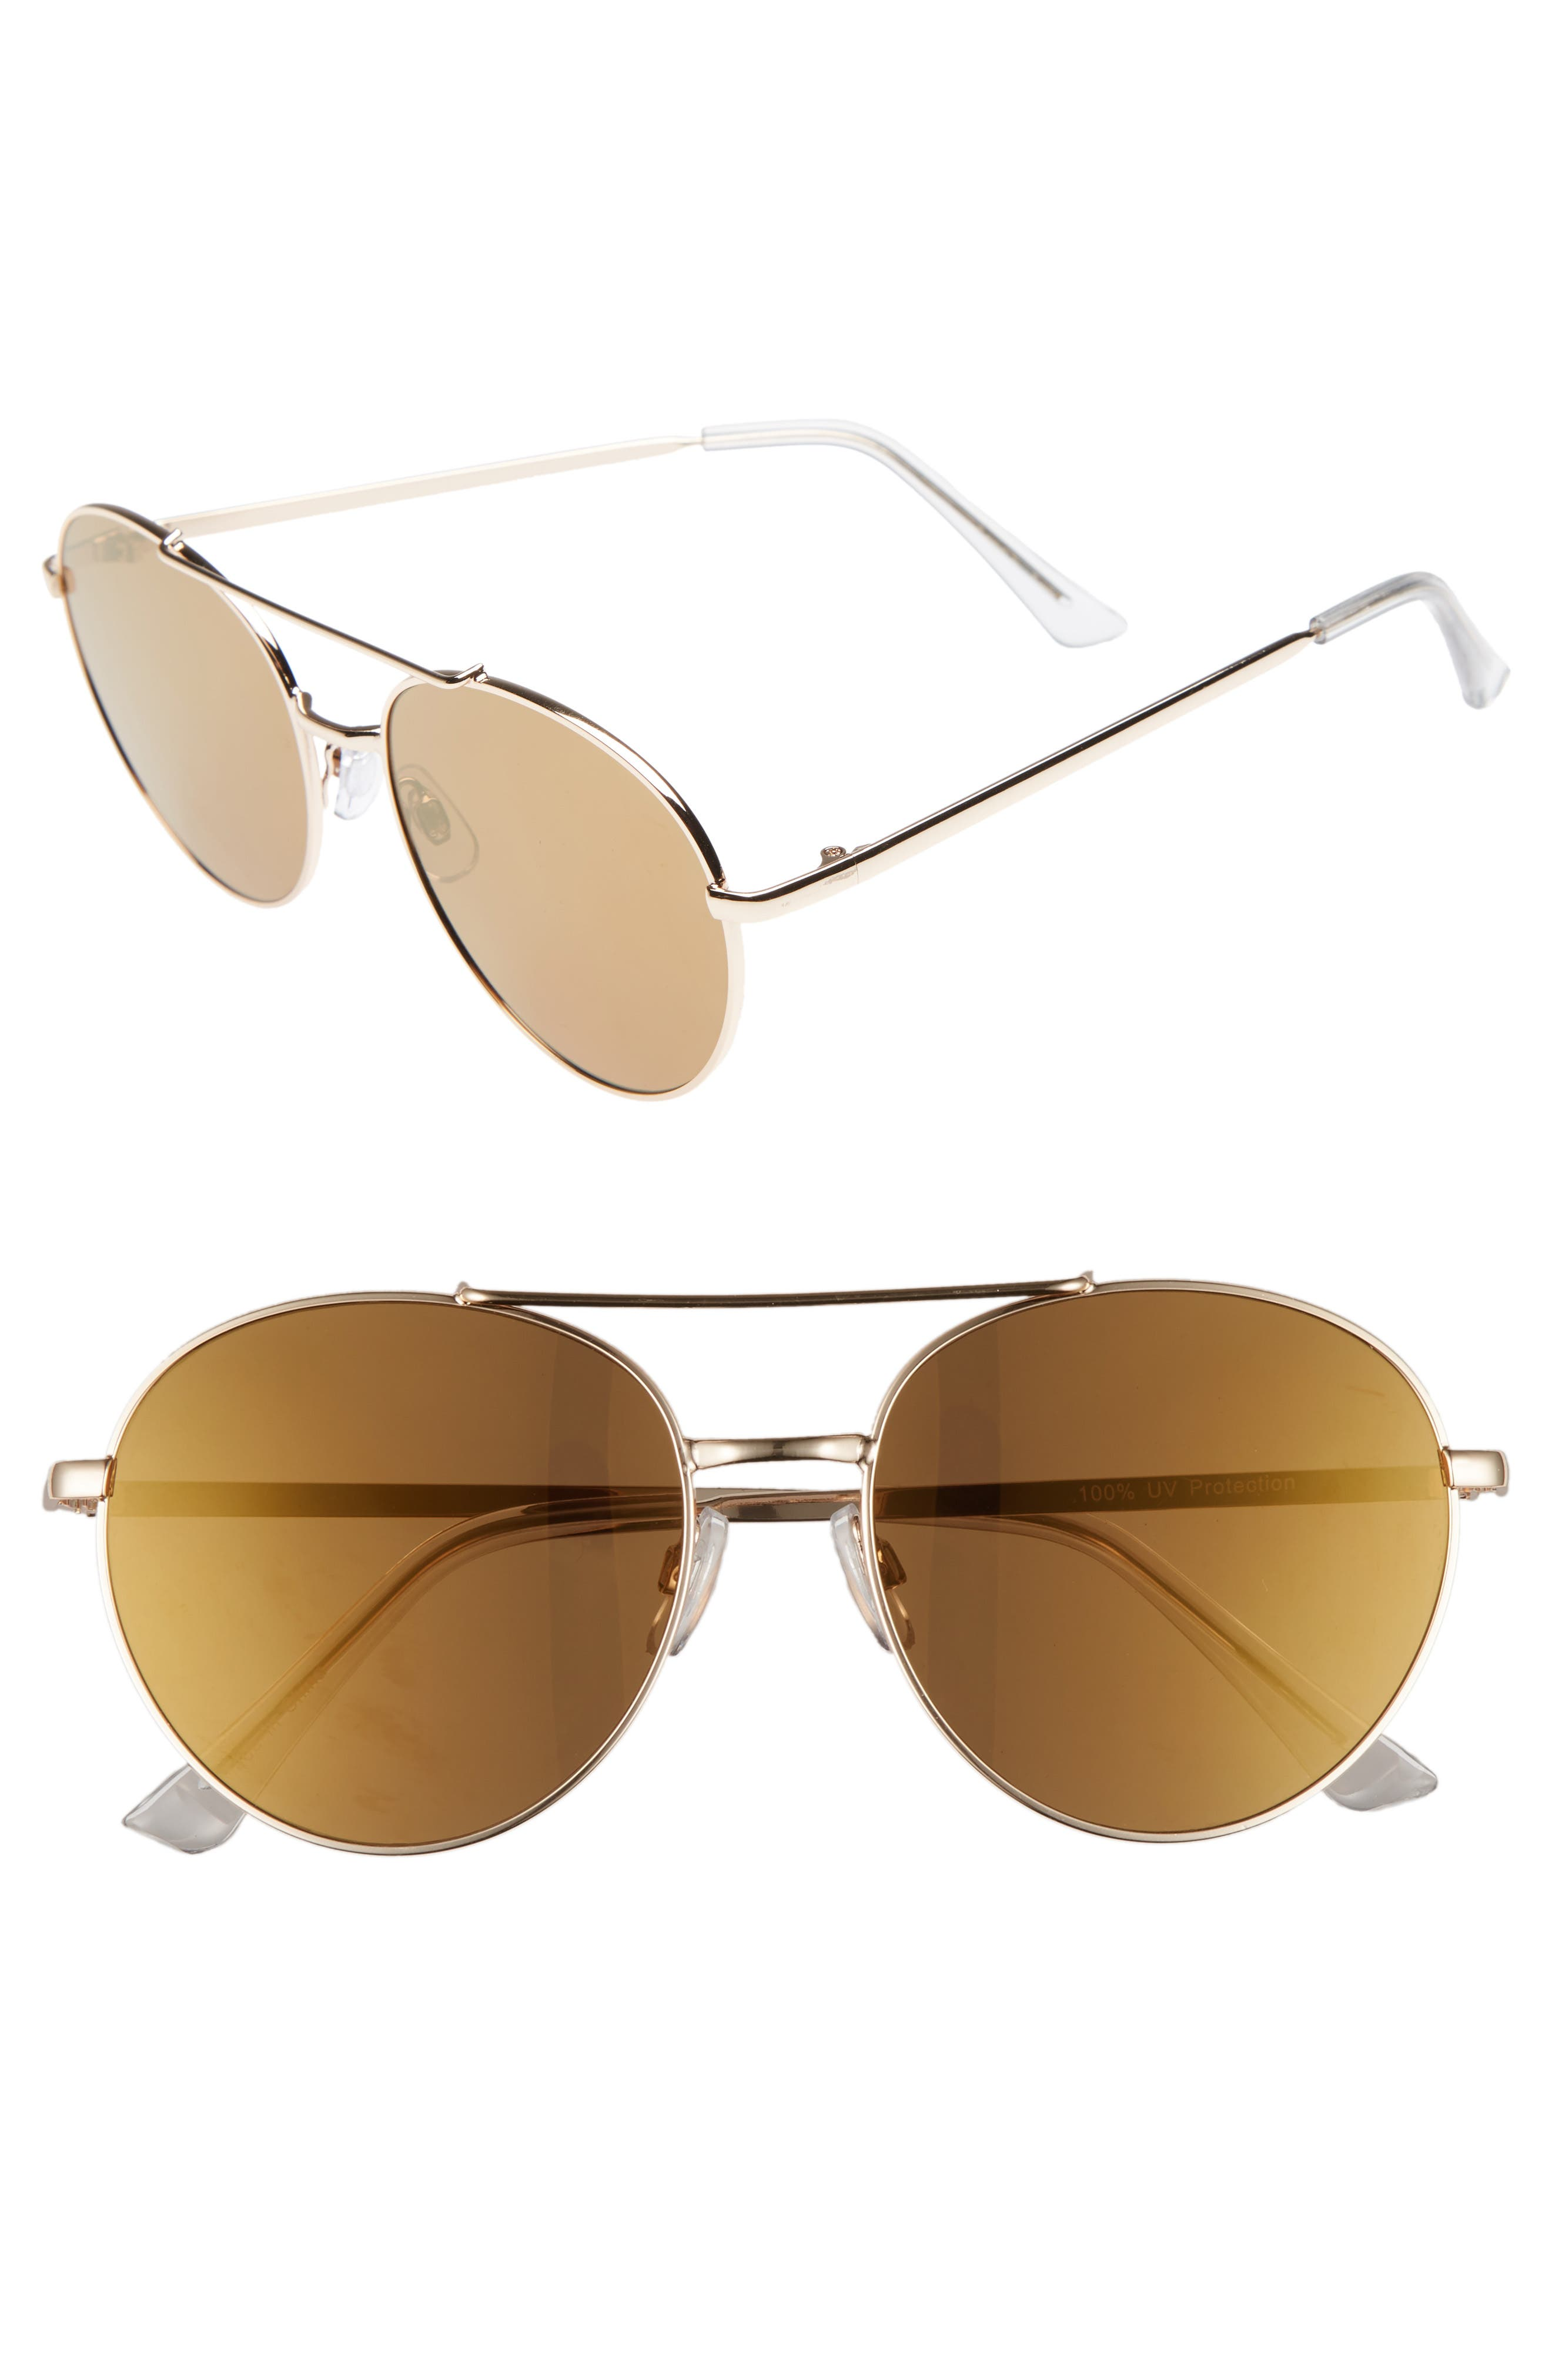 Lucky Seven 55mm Metal Aviator Sunglasses,                             Main thumbnail 1, color,                             710